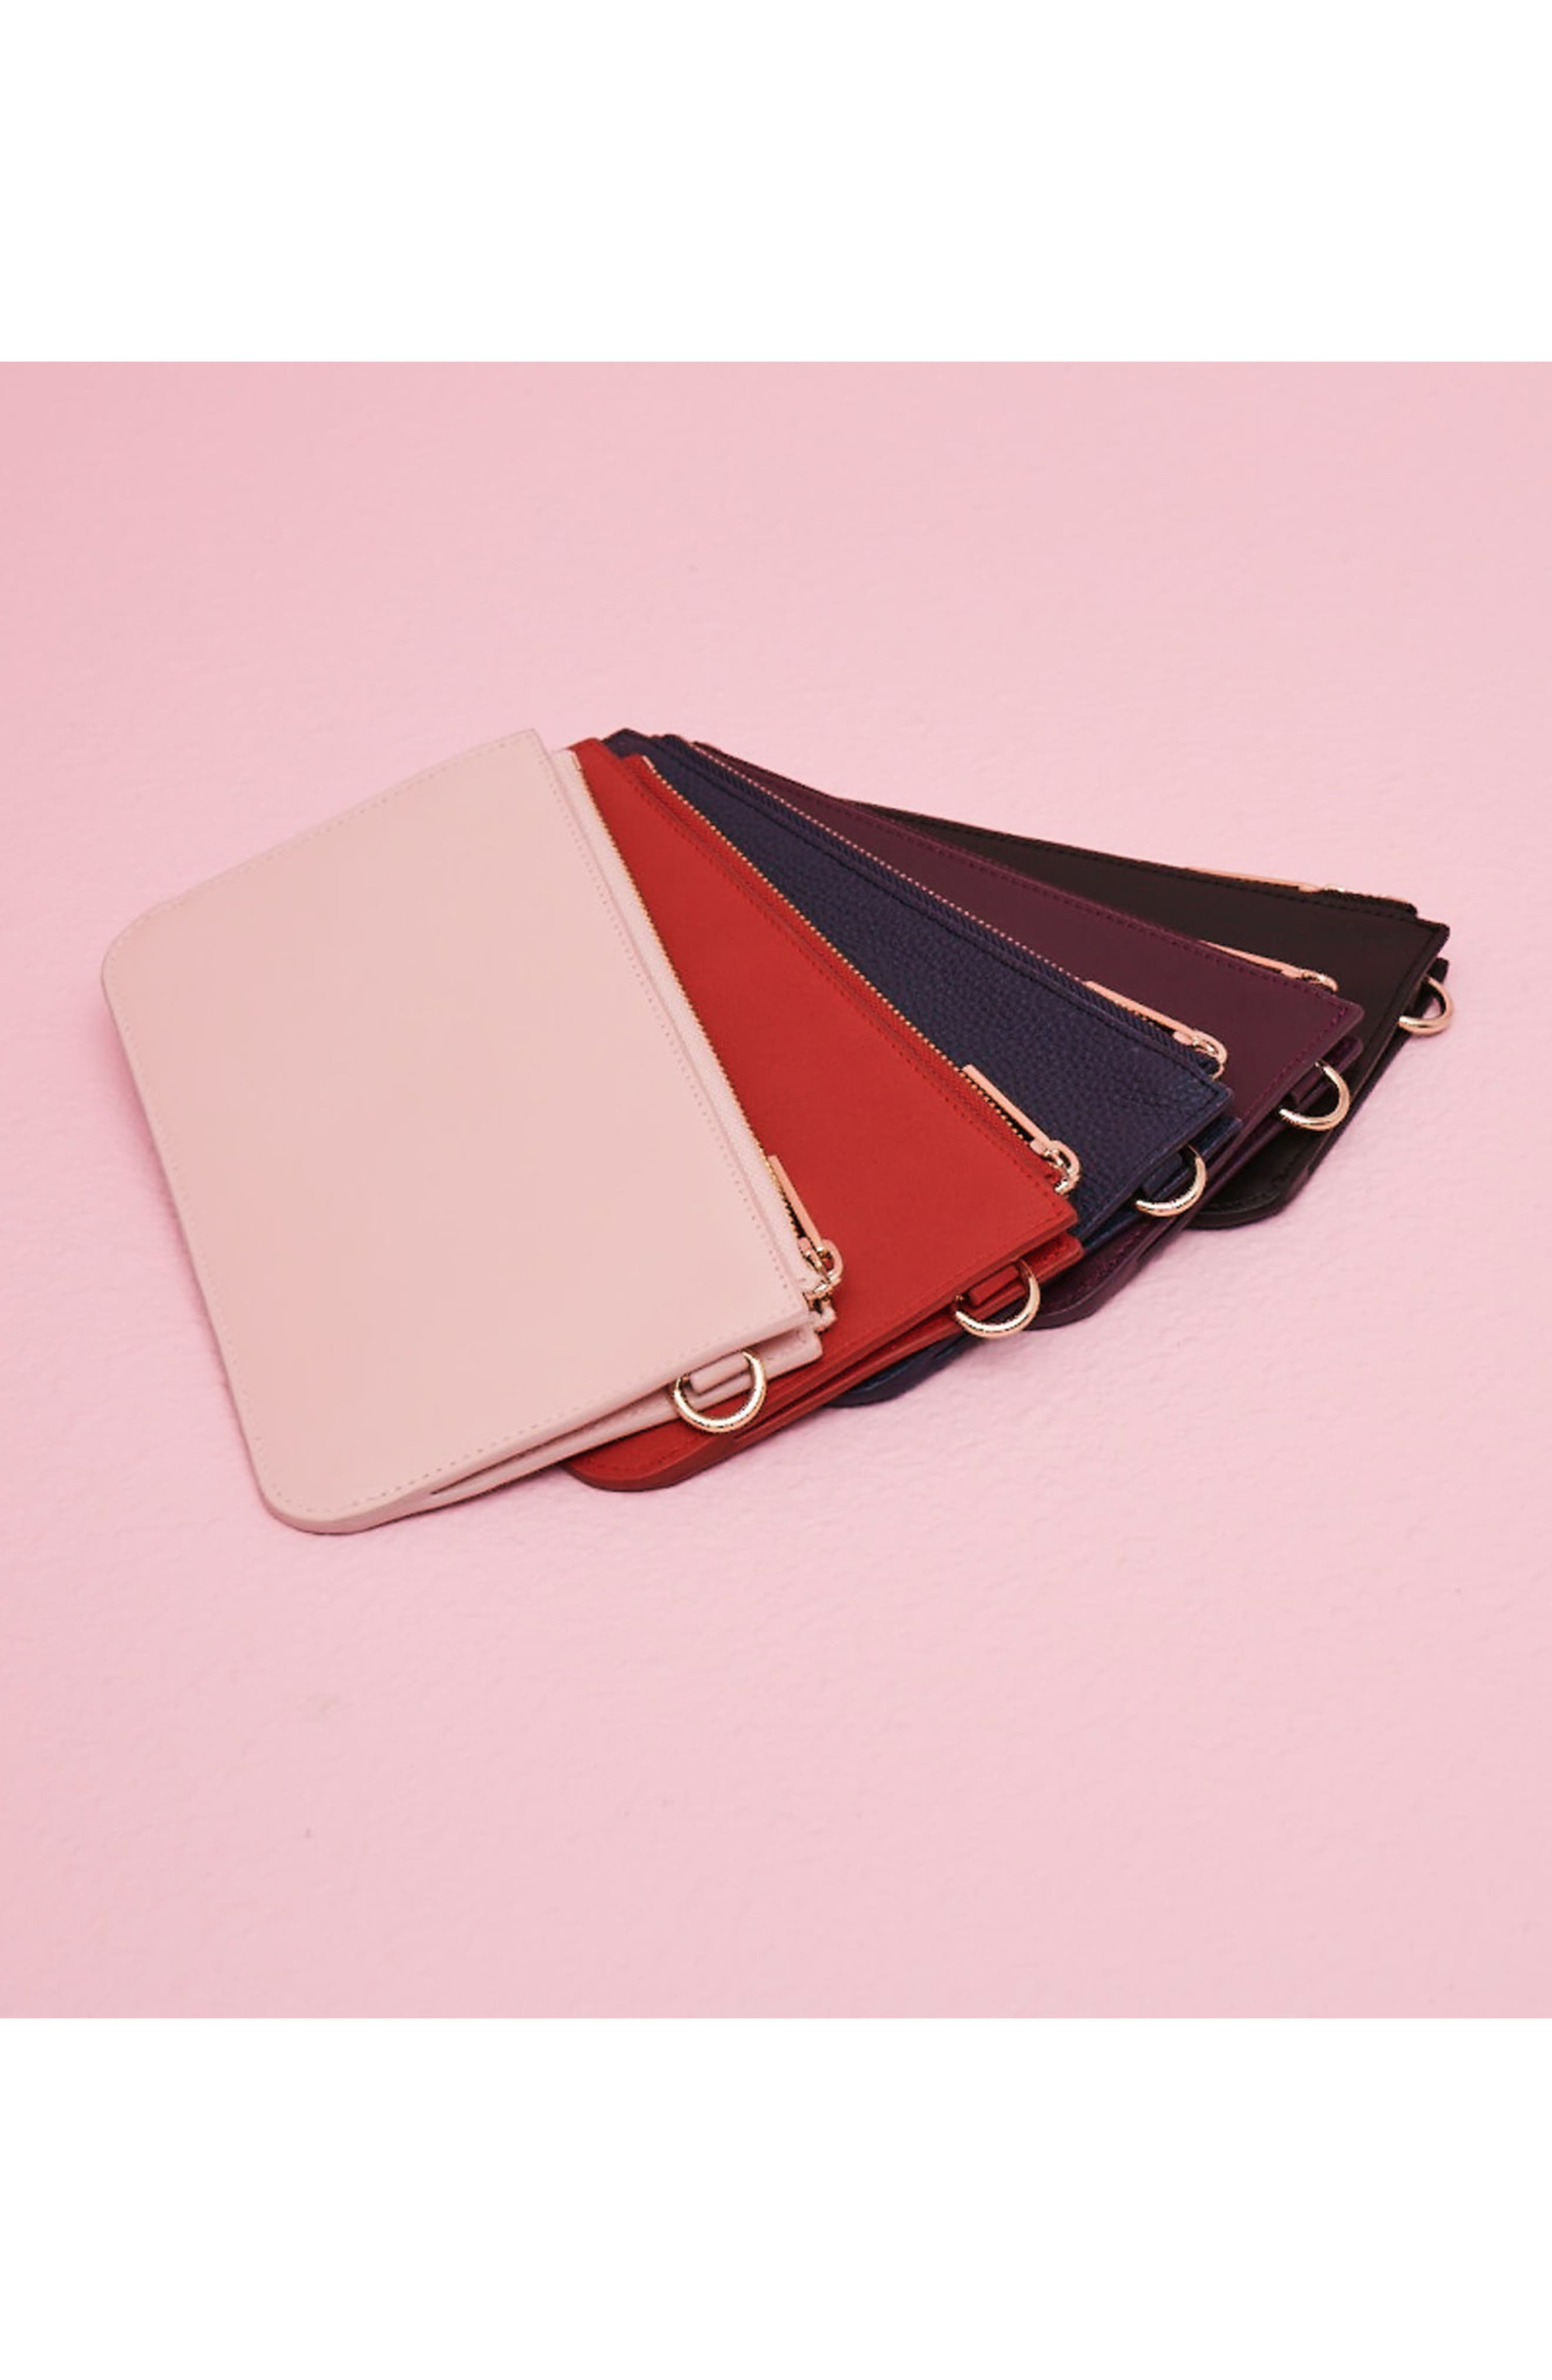 Leather Zip Pouch,                             Alternate thumbnail 2, color,                             001